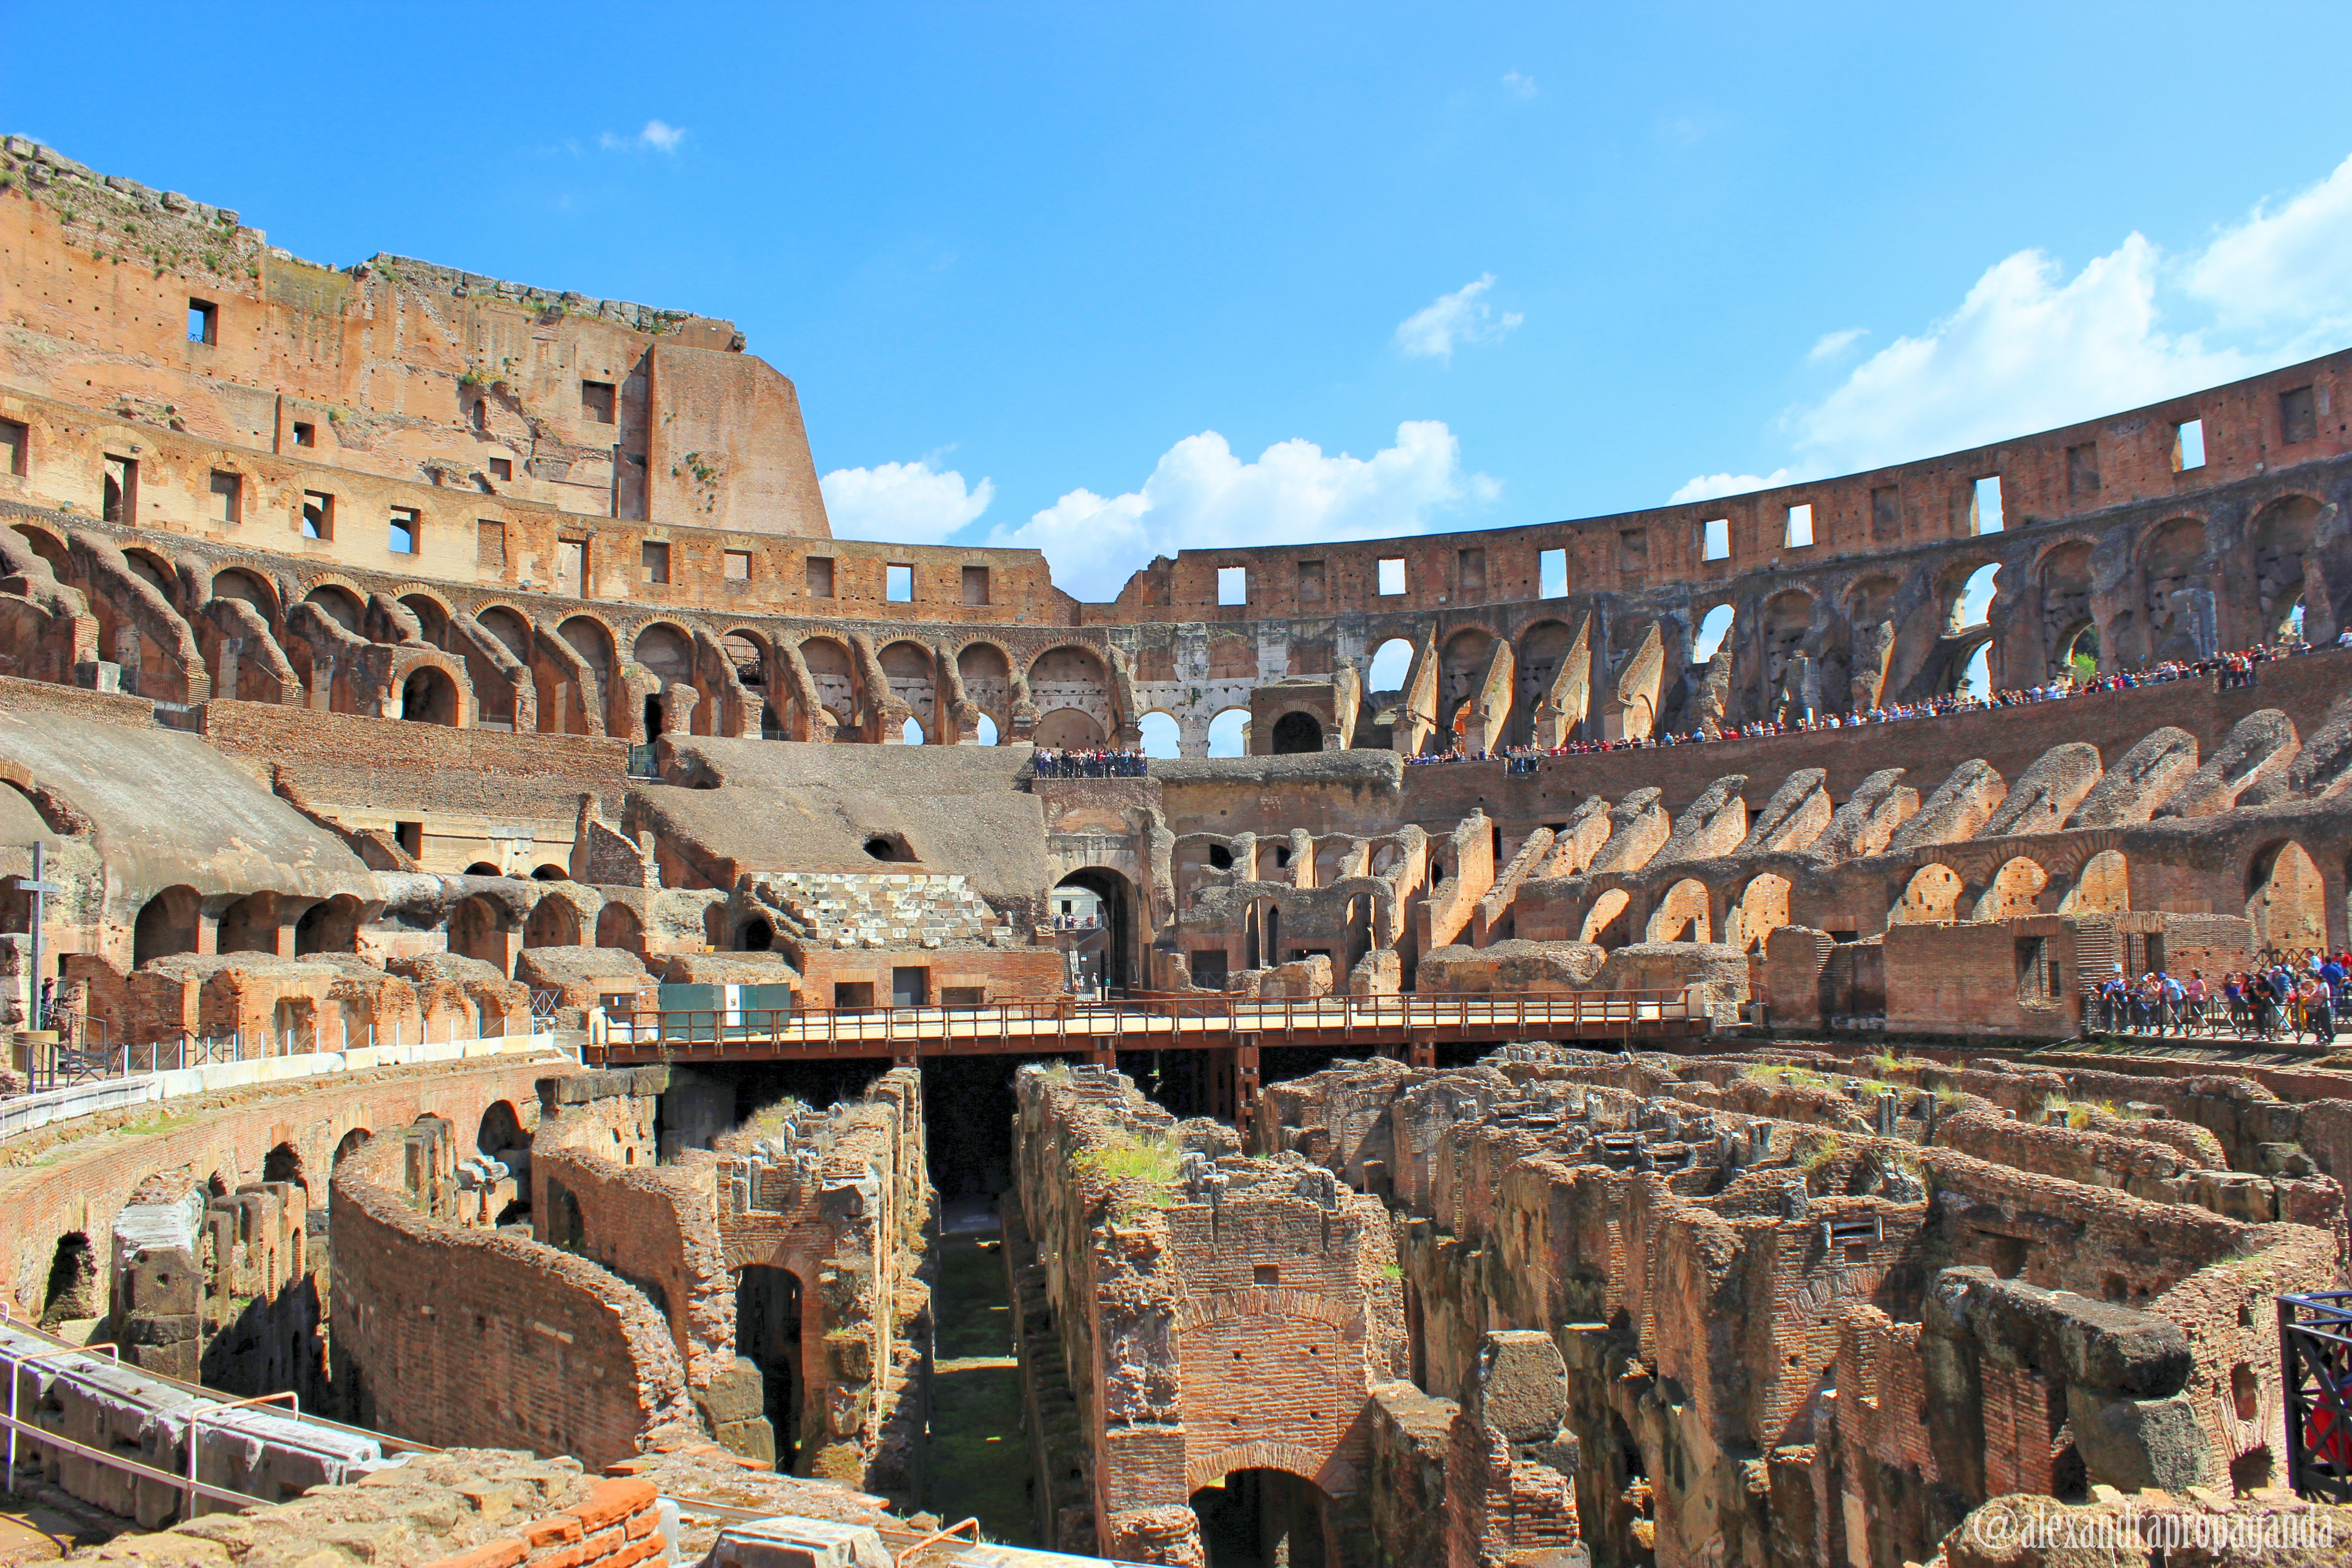 Visiting The Colosseum, Roman Forum, And Palatine Hill In